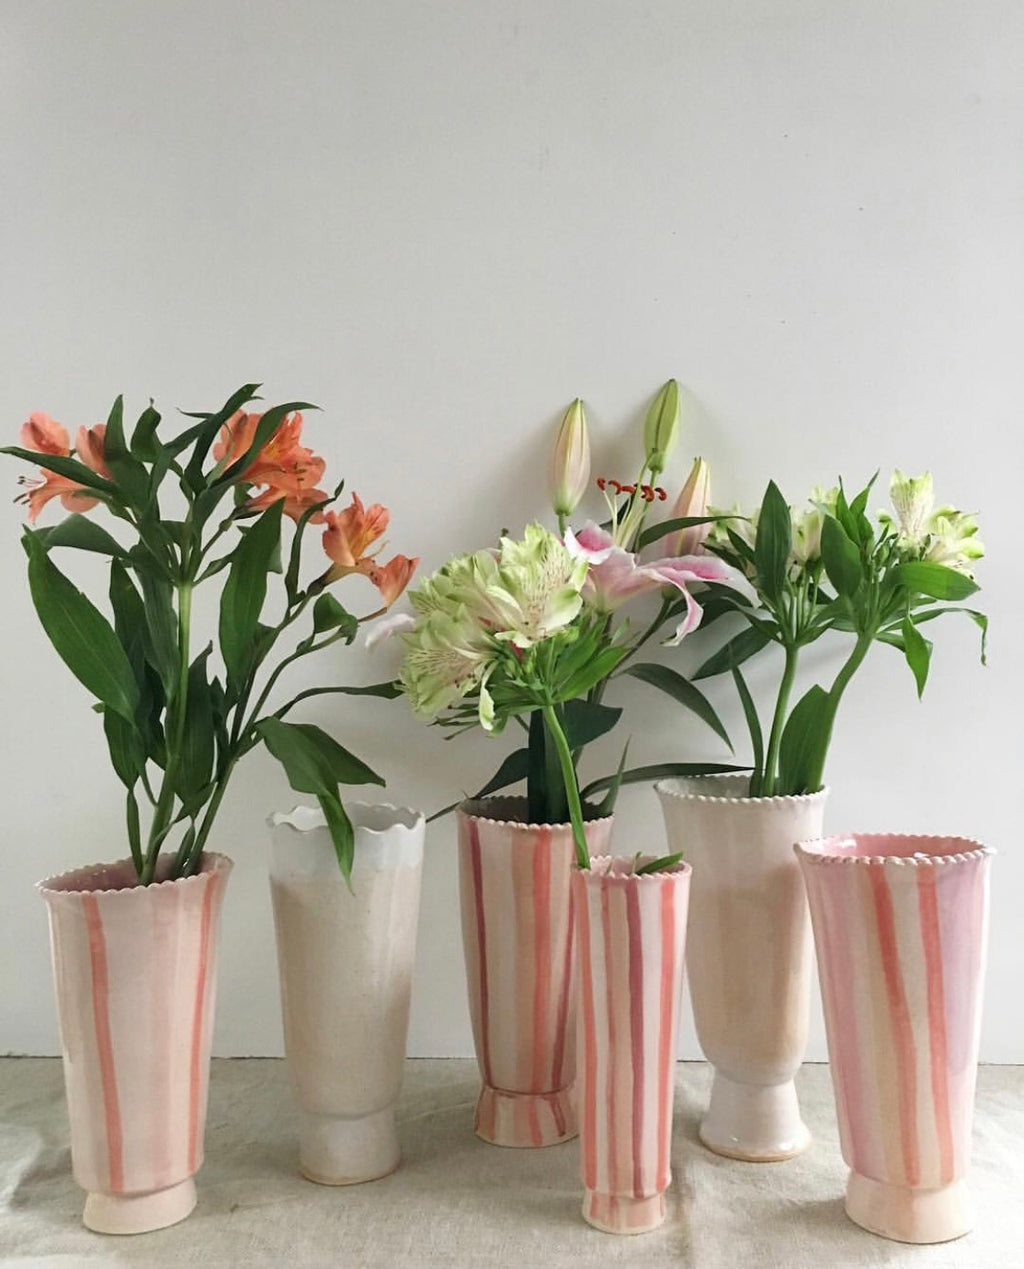 Daisy Striped Vase